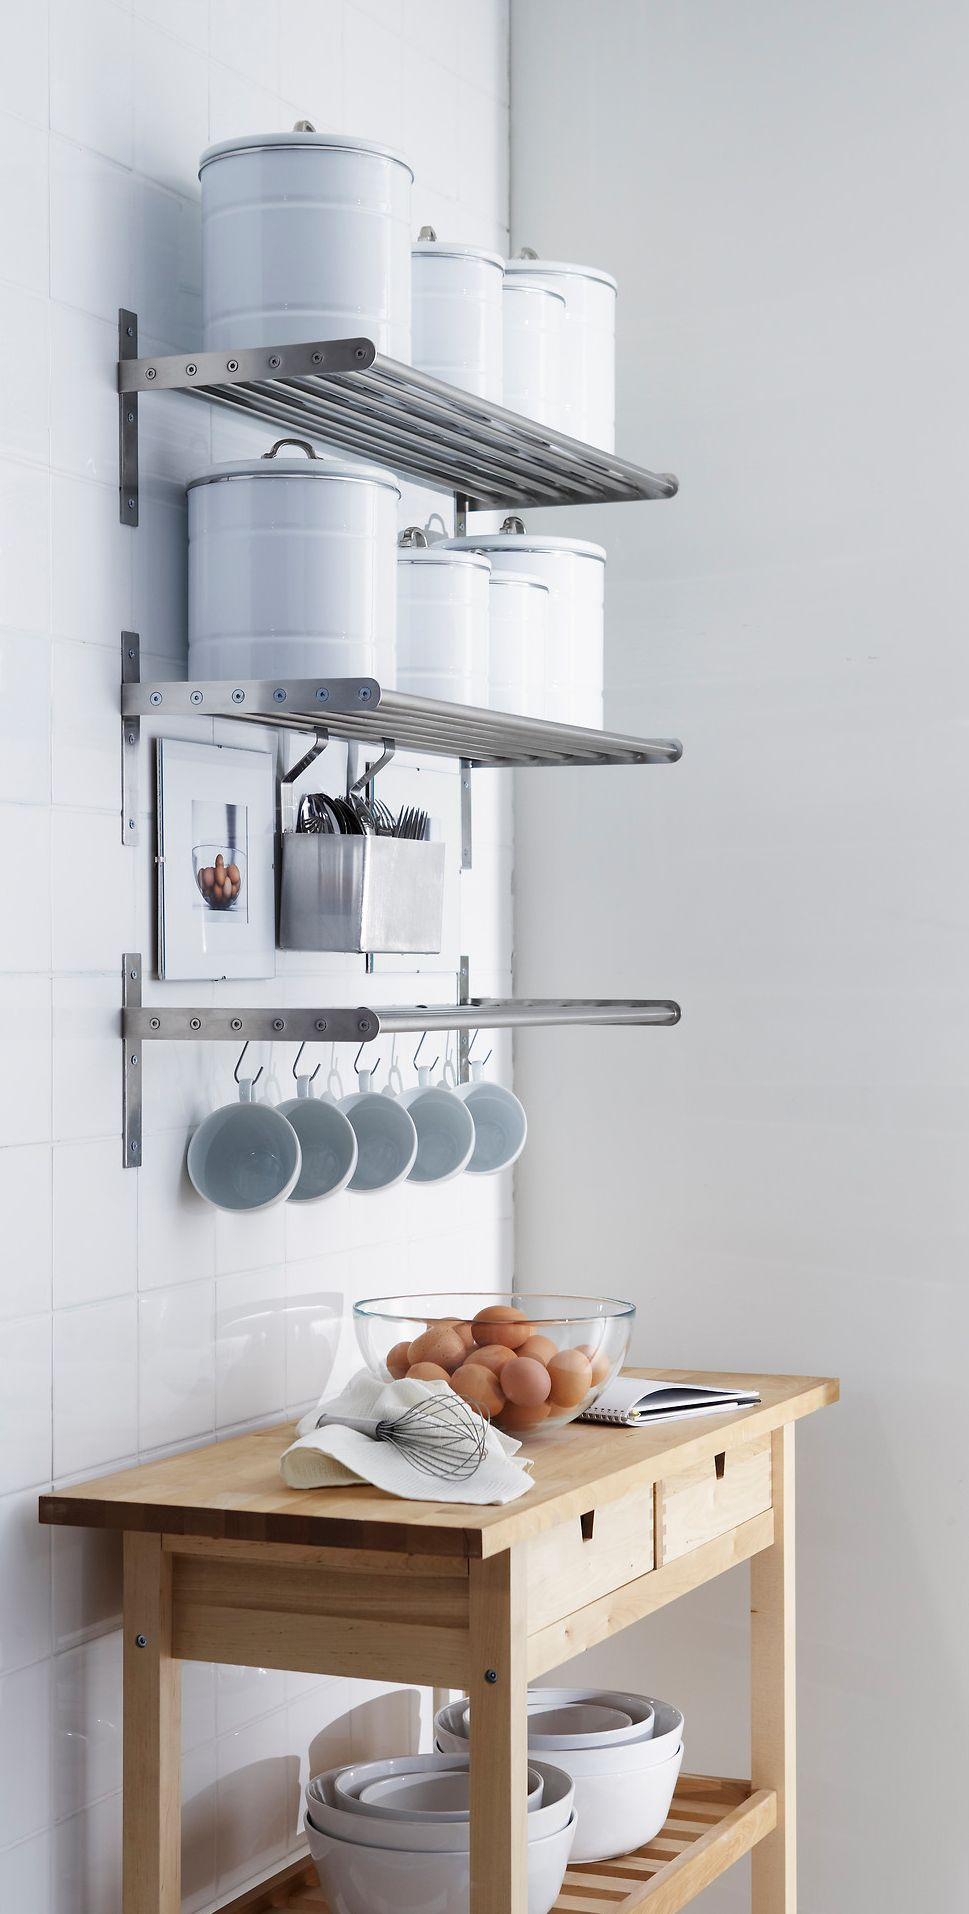 65 ingenious kitchen organization tips and storage ideas for Kitchen shelf ideas